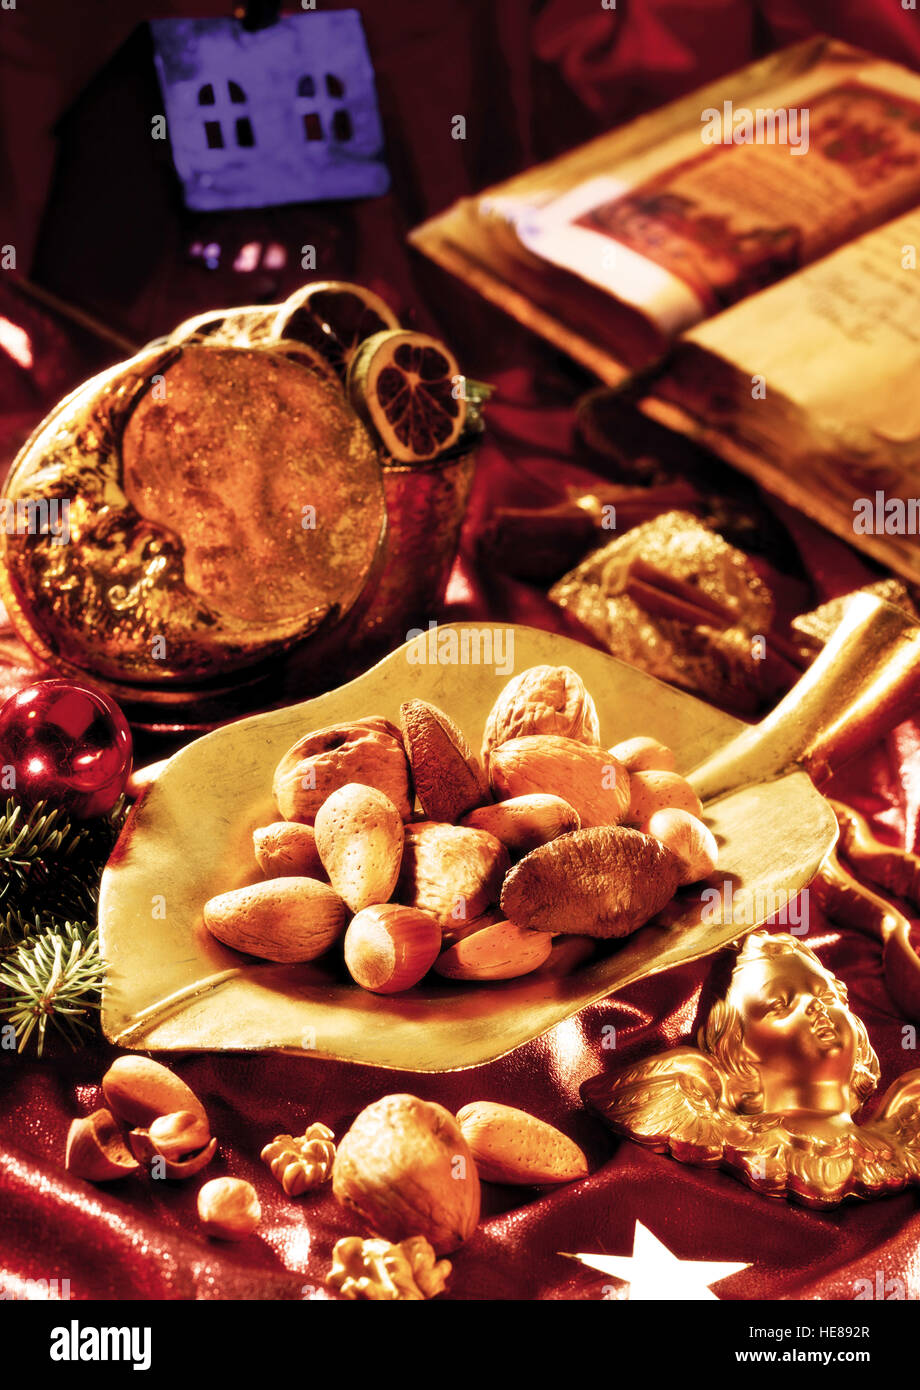 Mixed nuts on a golden plate, christmas atmosphere - Stock Image